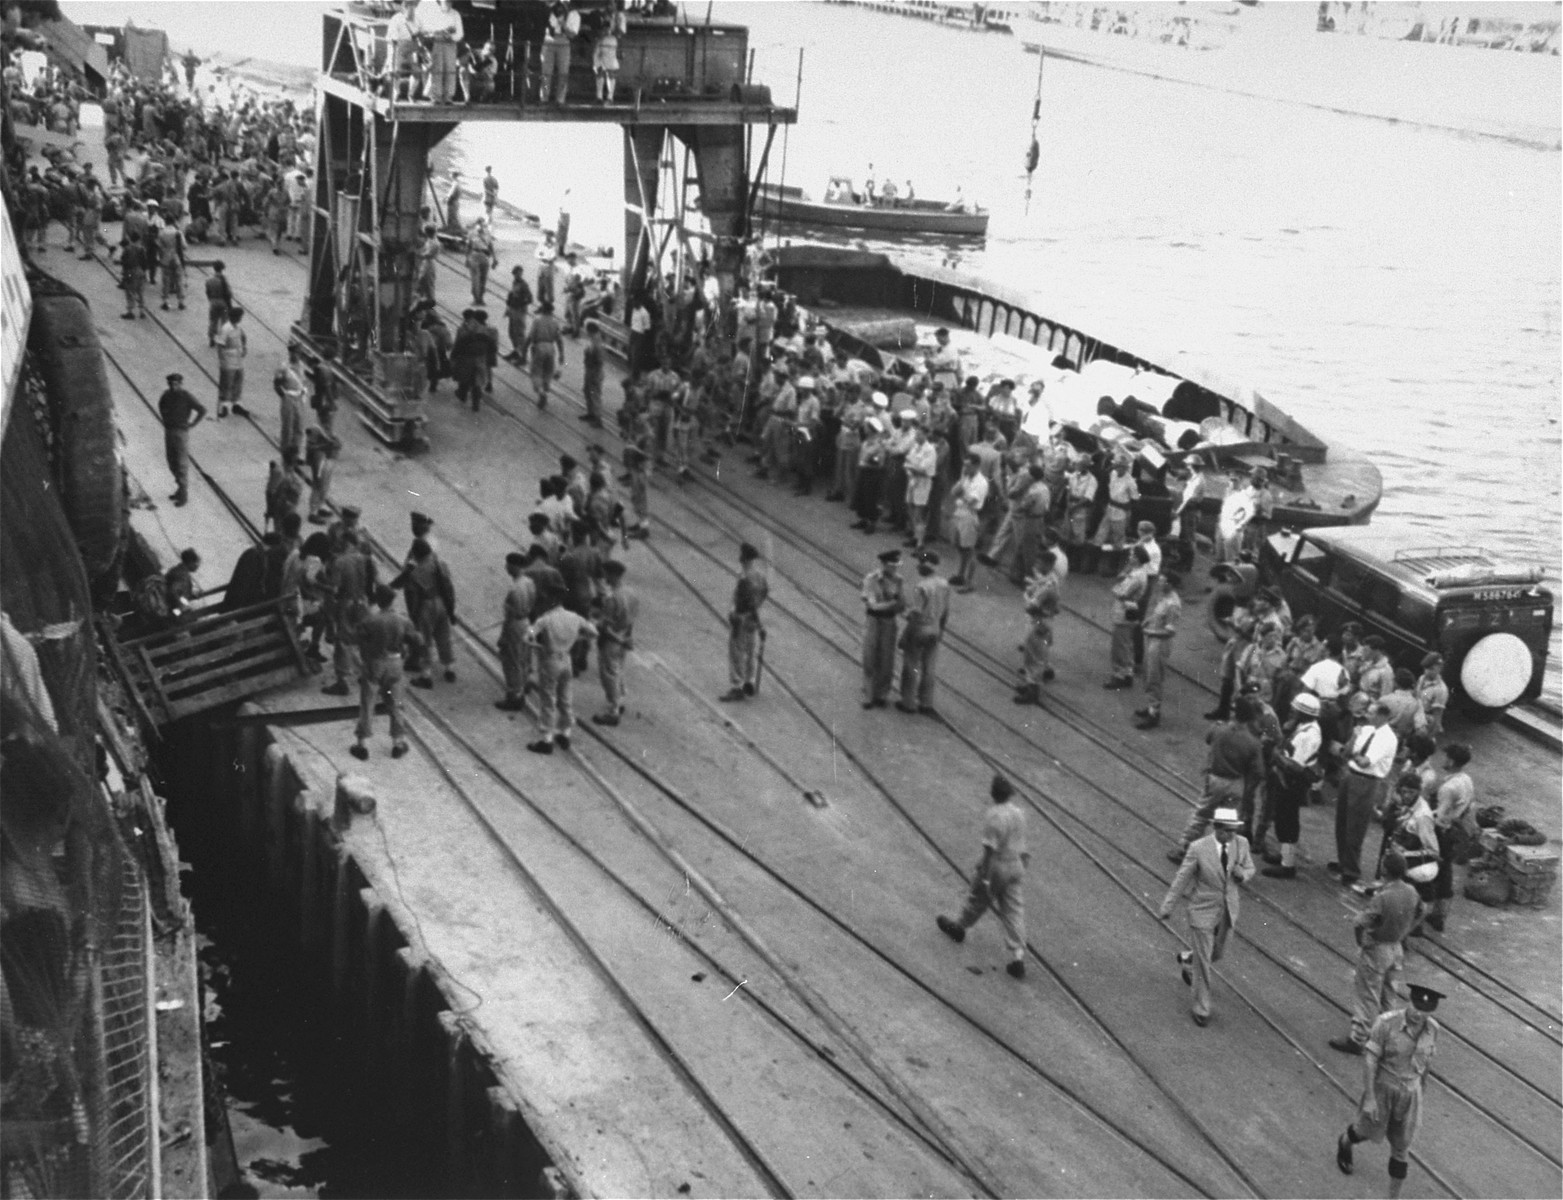 British soldiers transfer Jewish refugees from the Exodus 1947 to the deportation ships.